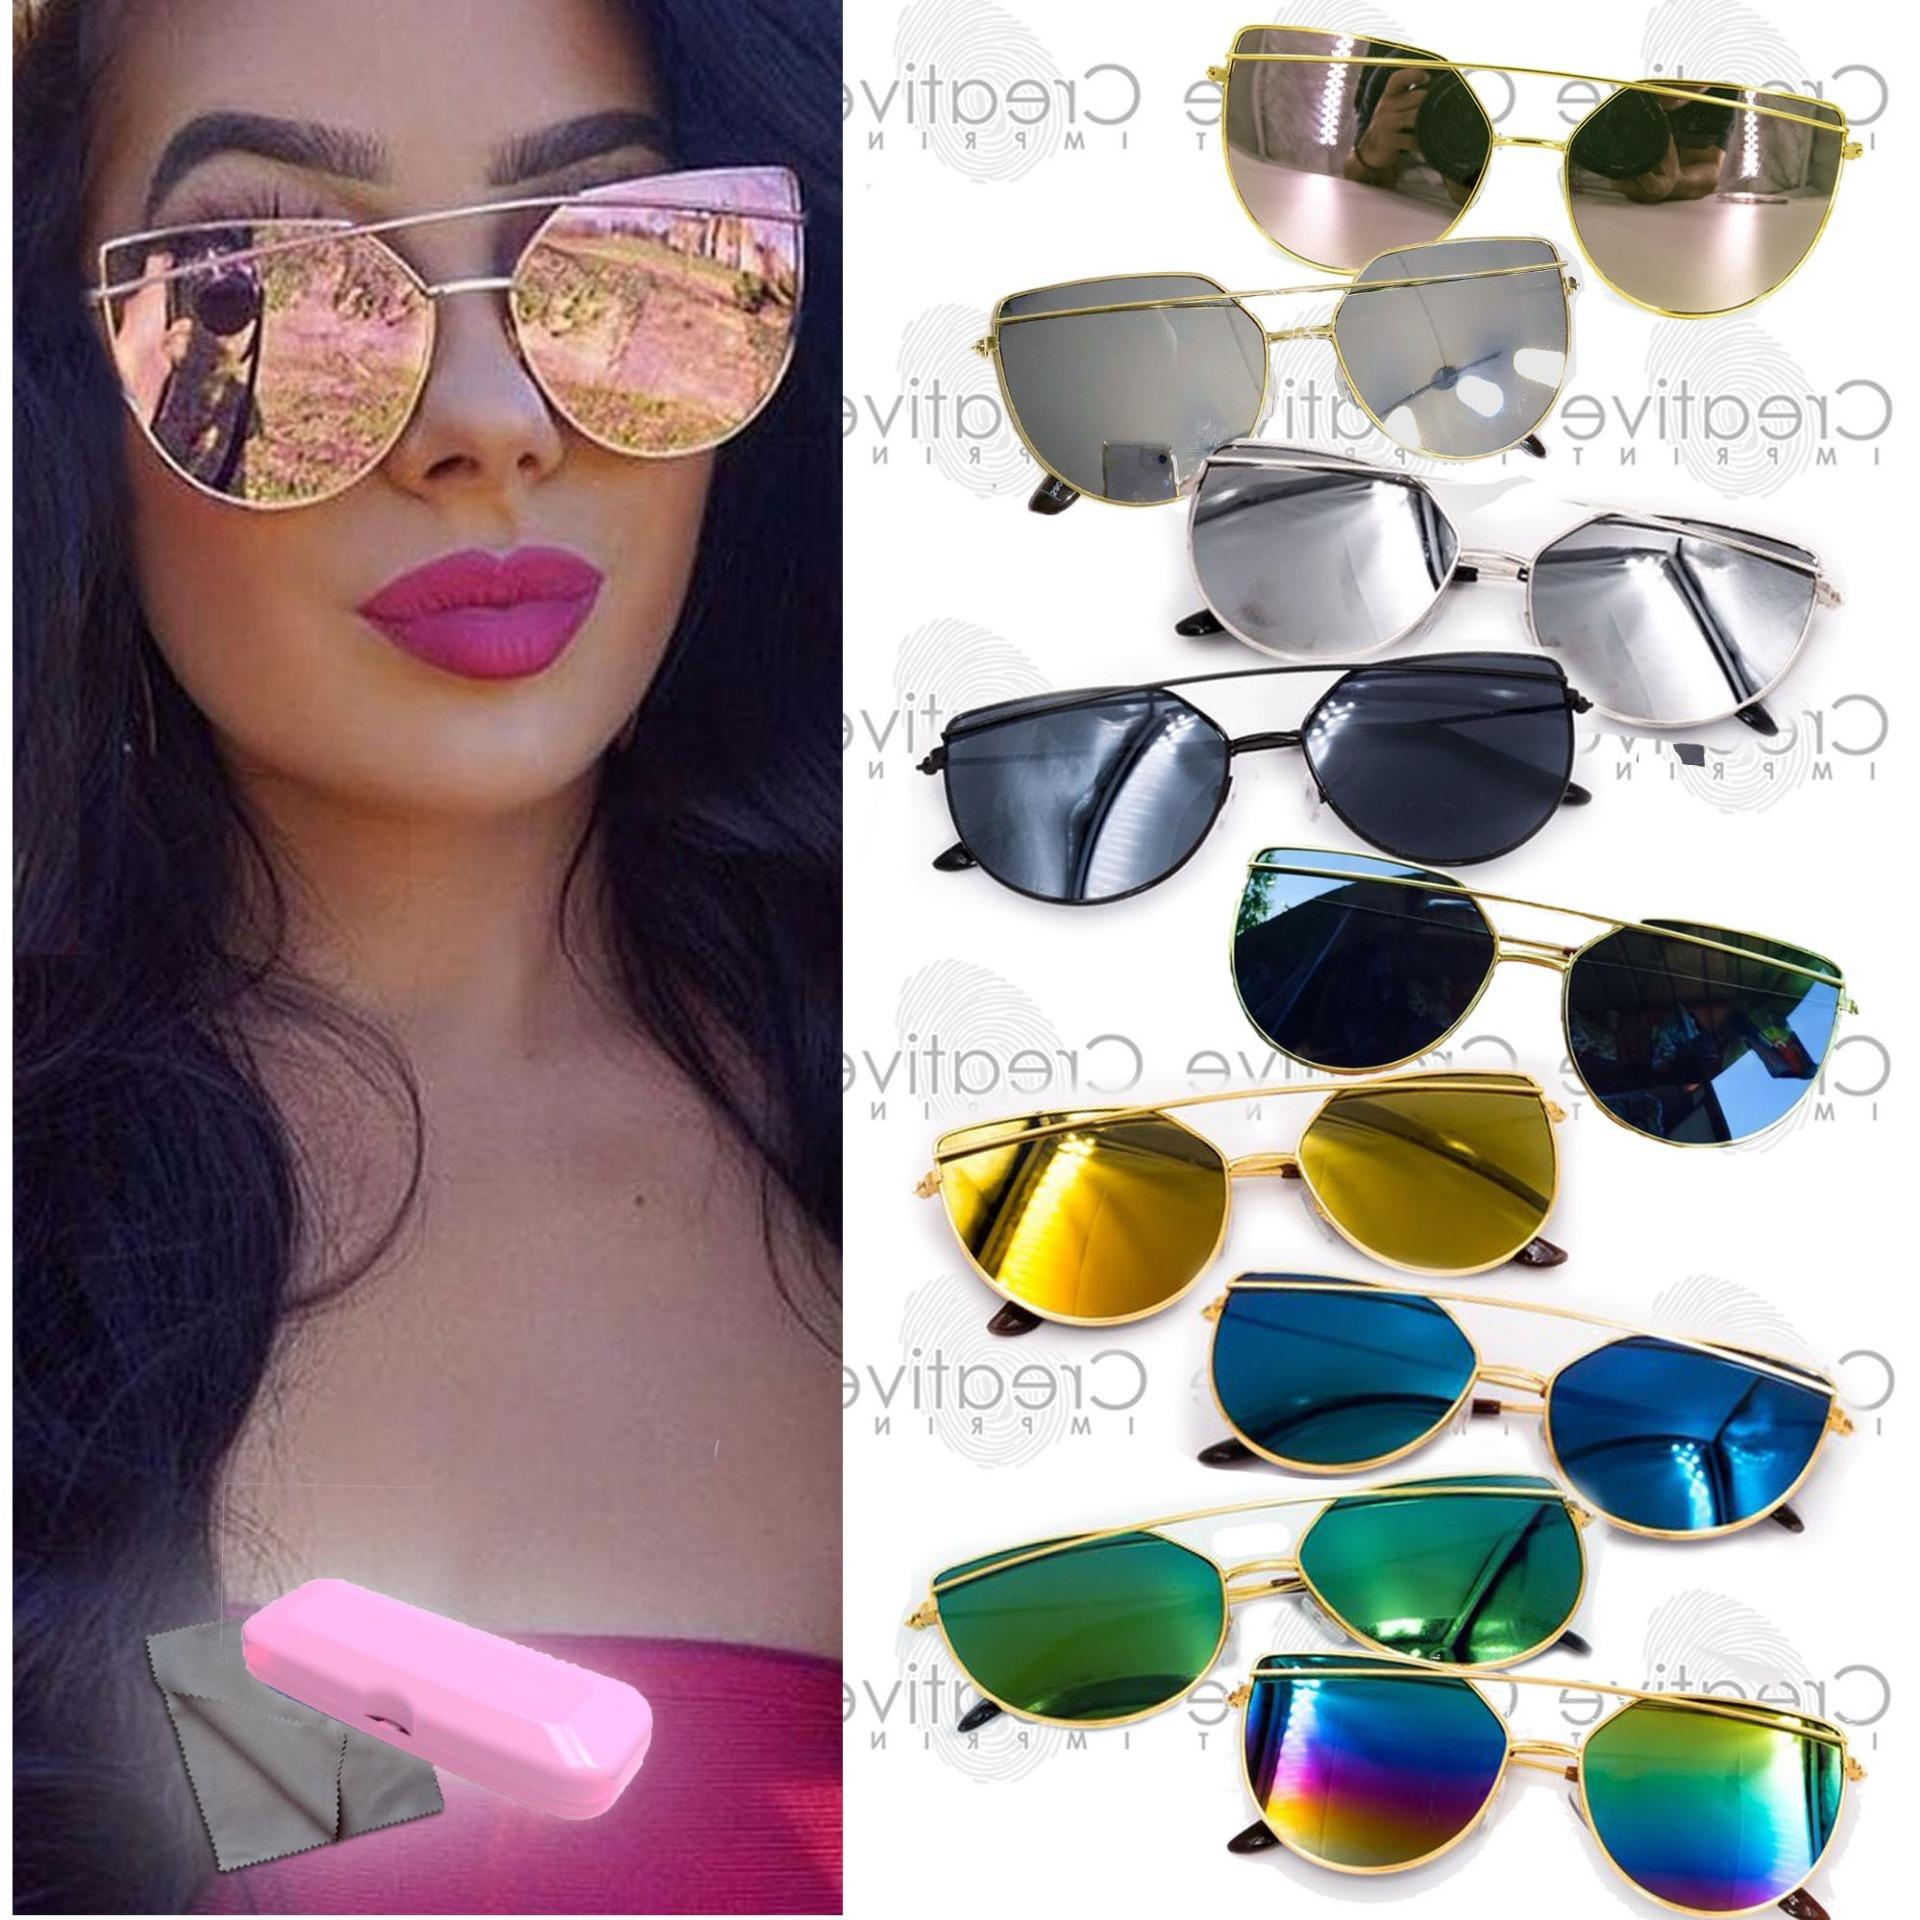 ff542572de Double Bridge Cat Eye Flat Sunnies Sunglasses (FREE CASE WIPER) Shades  Light Metal Lens